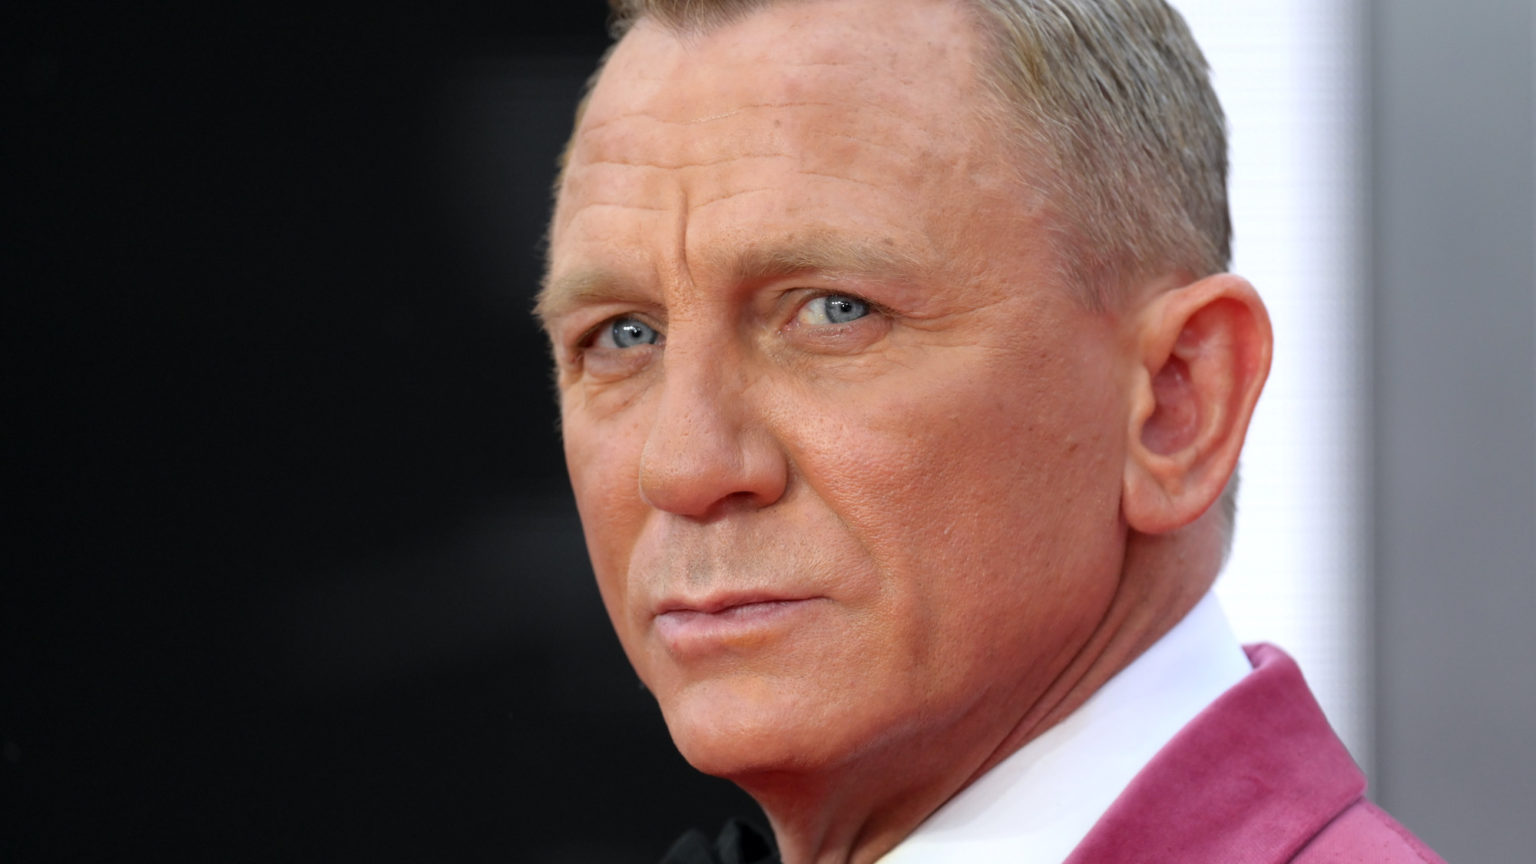 Can any actor play James Bond?